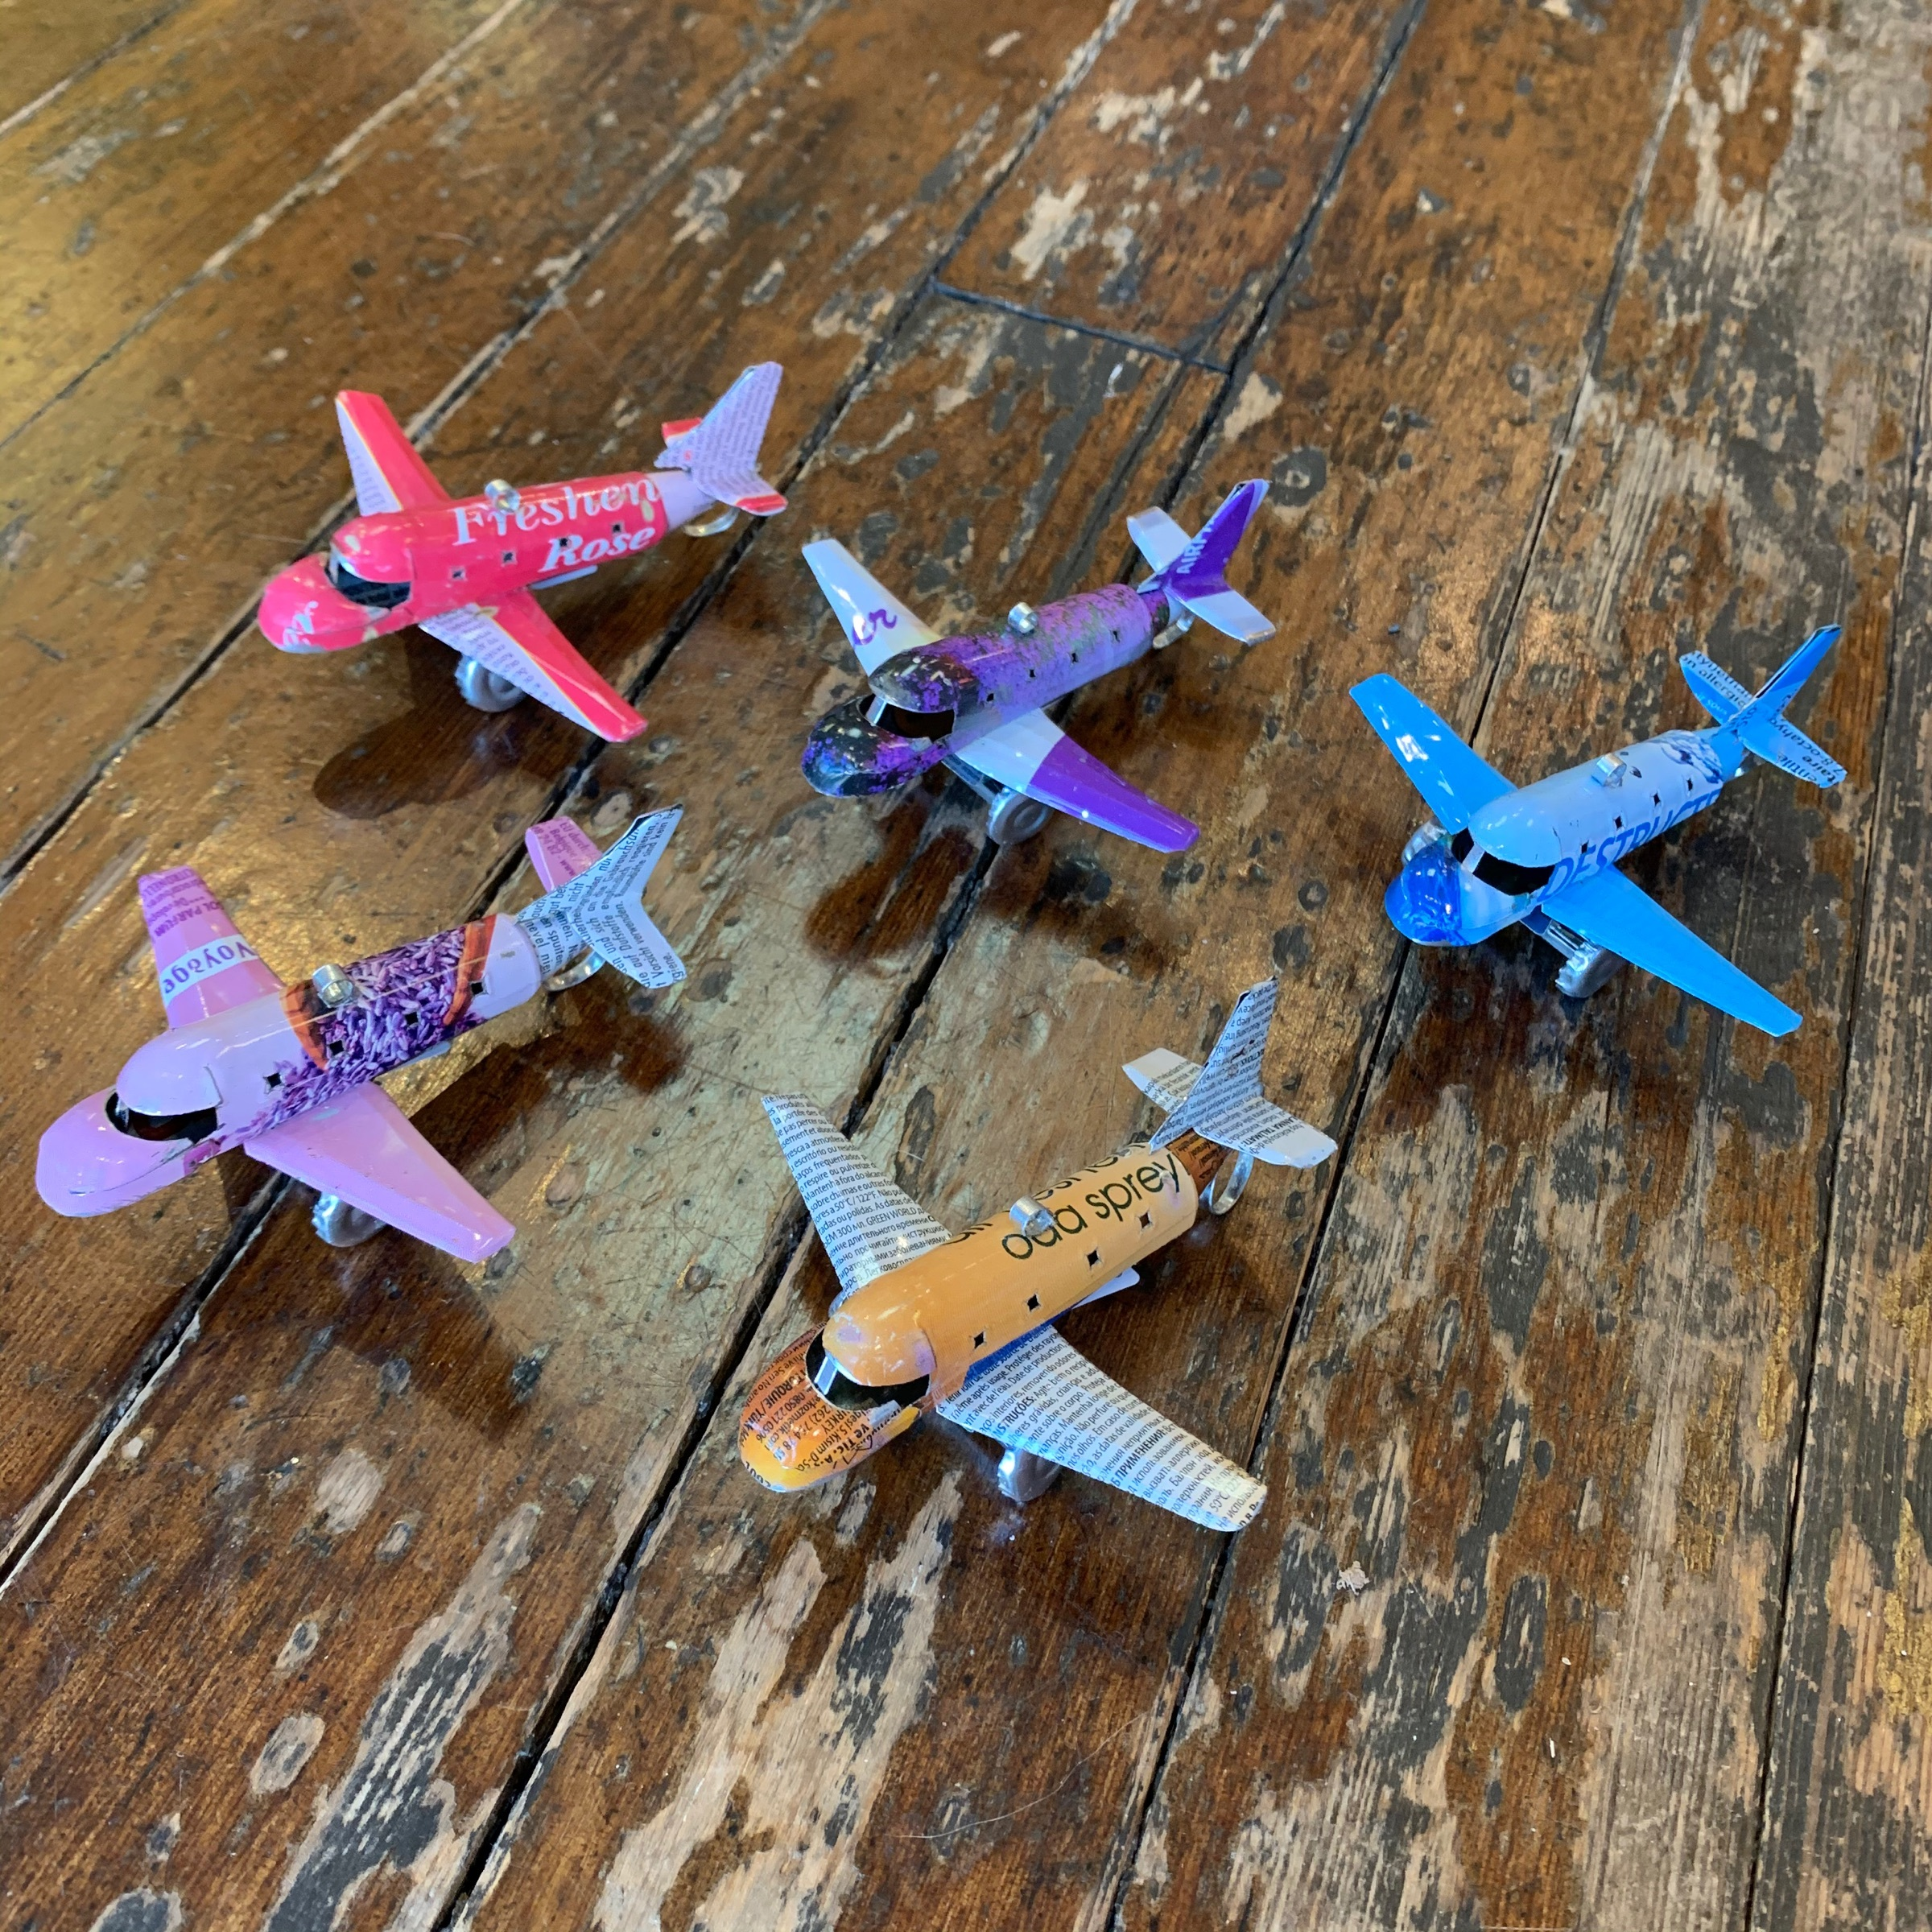 Recycled Tin Planes